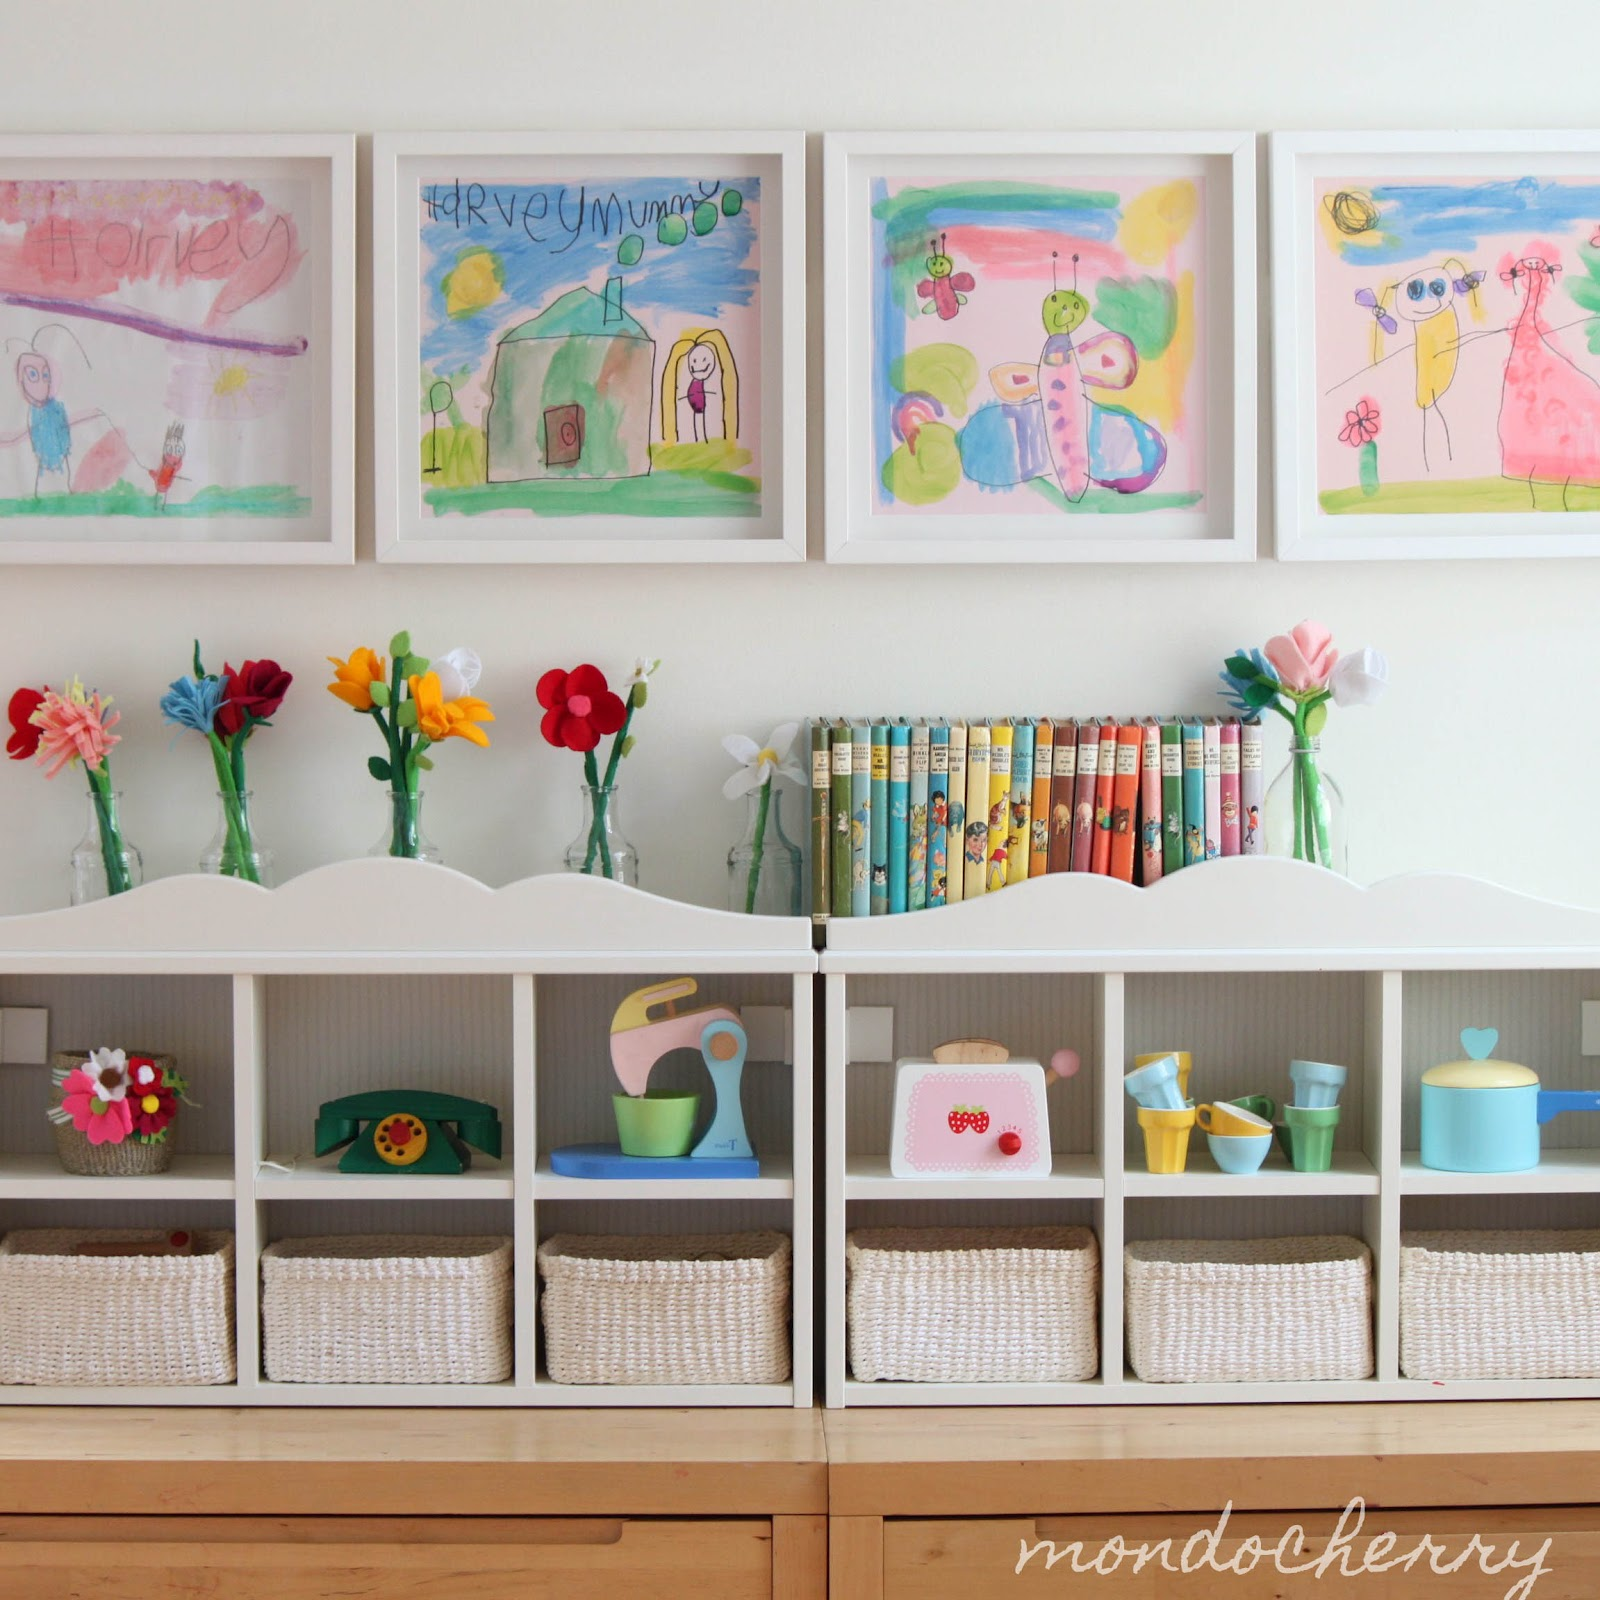 Mondocherry-Whitewash-Childs-room-storage-colorful-prints-and-pop-flowers